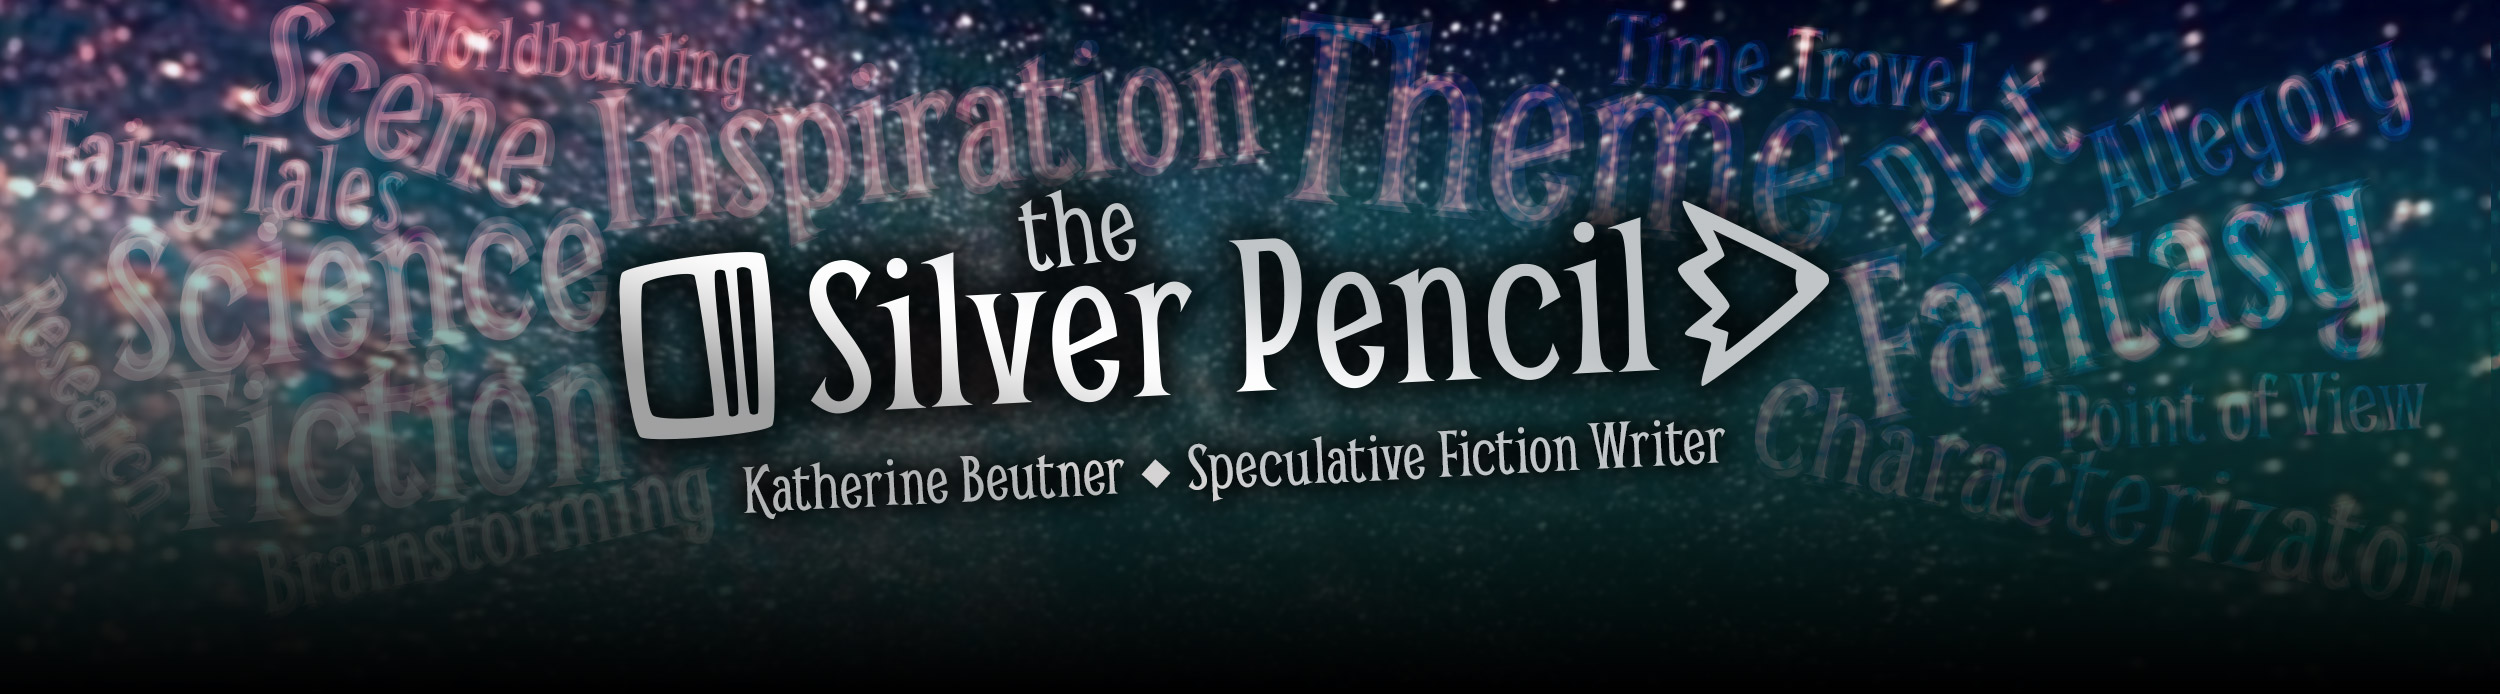 The Silver Pencil: Katherine Beutner, Speculative Fiction Writer